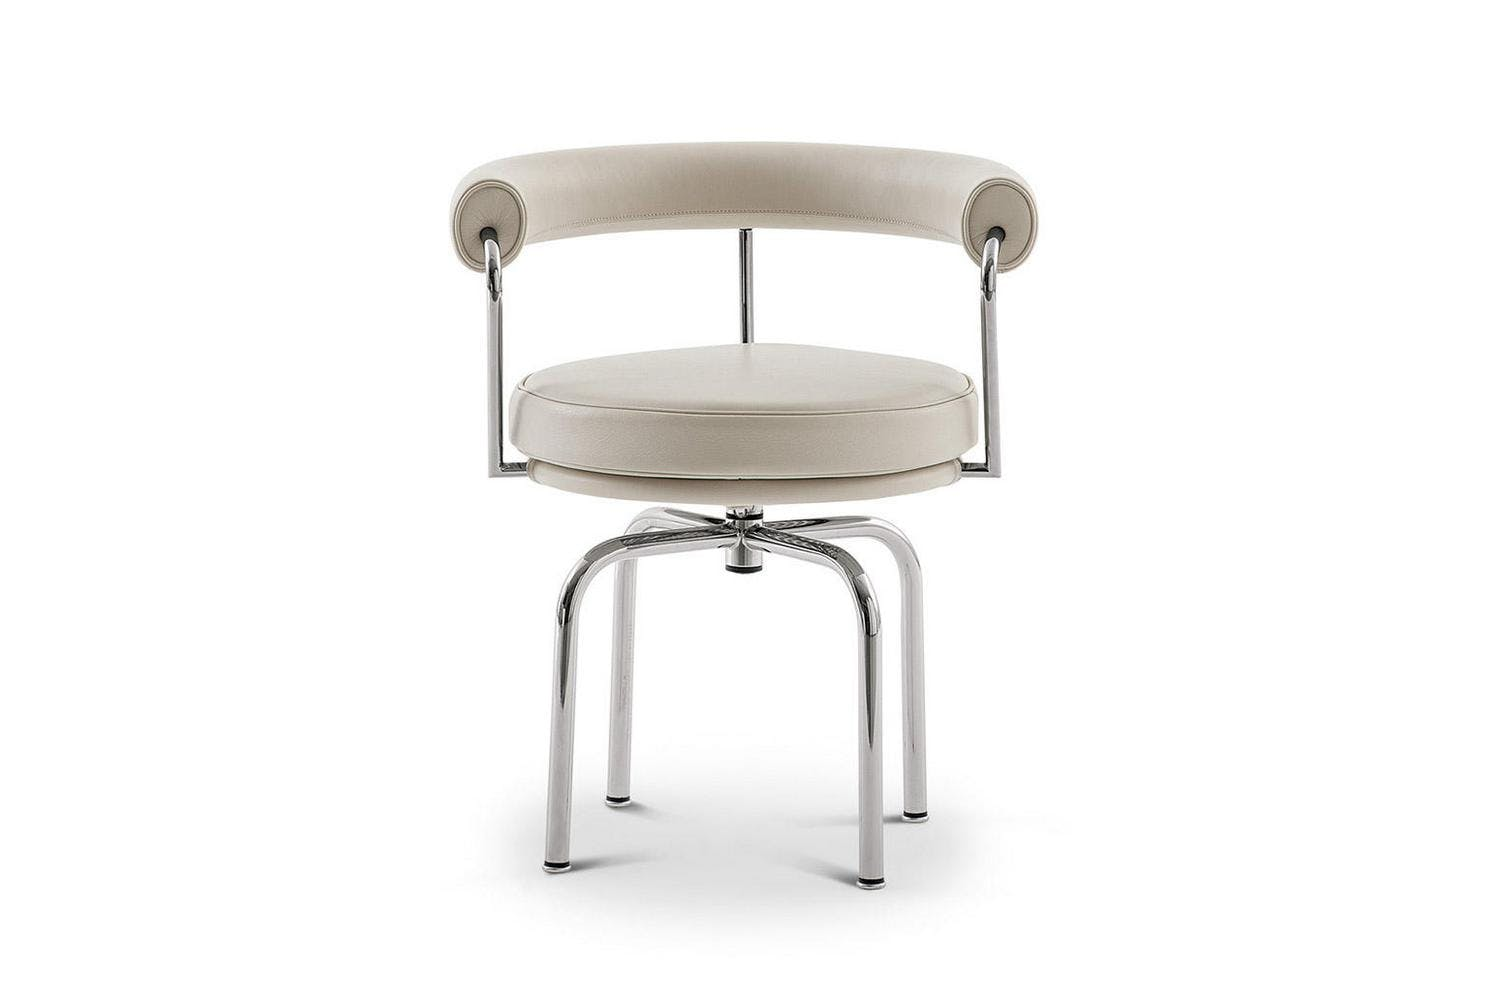 Lc7 Chair By Charlotte Perriand For Cassina Space Furniture